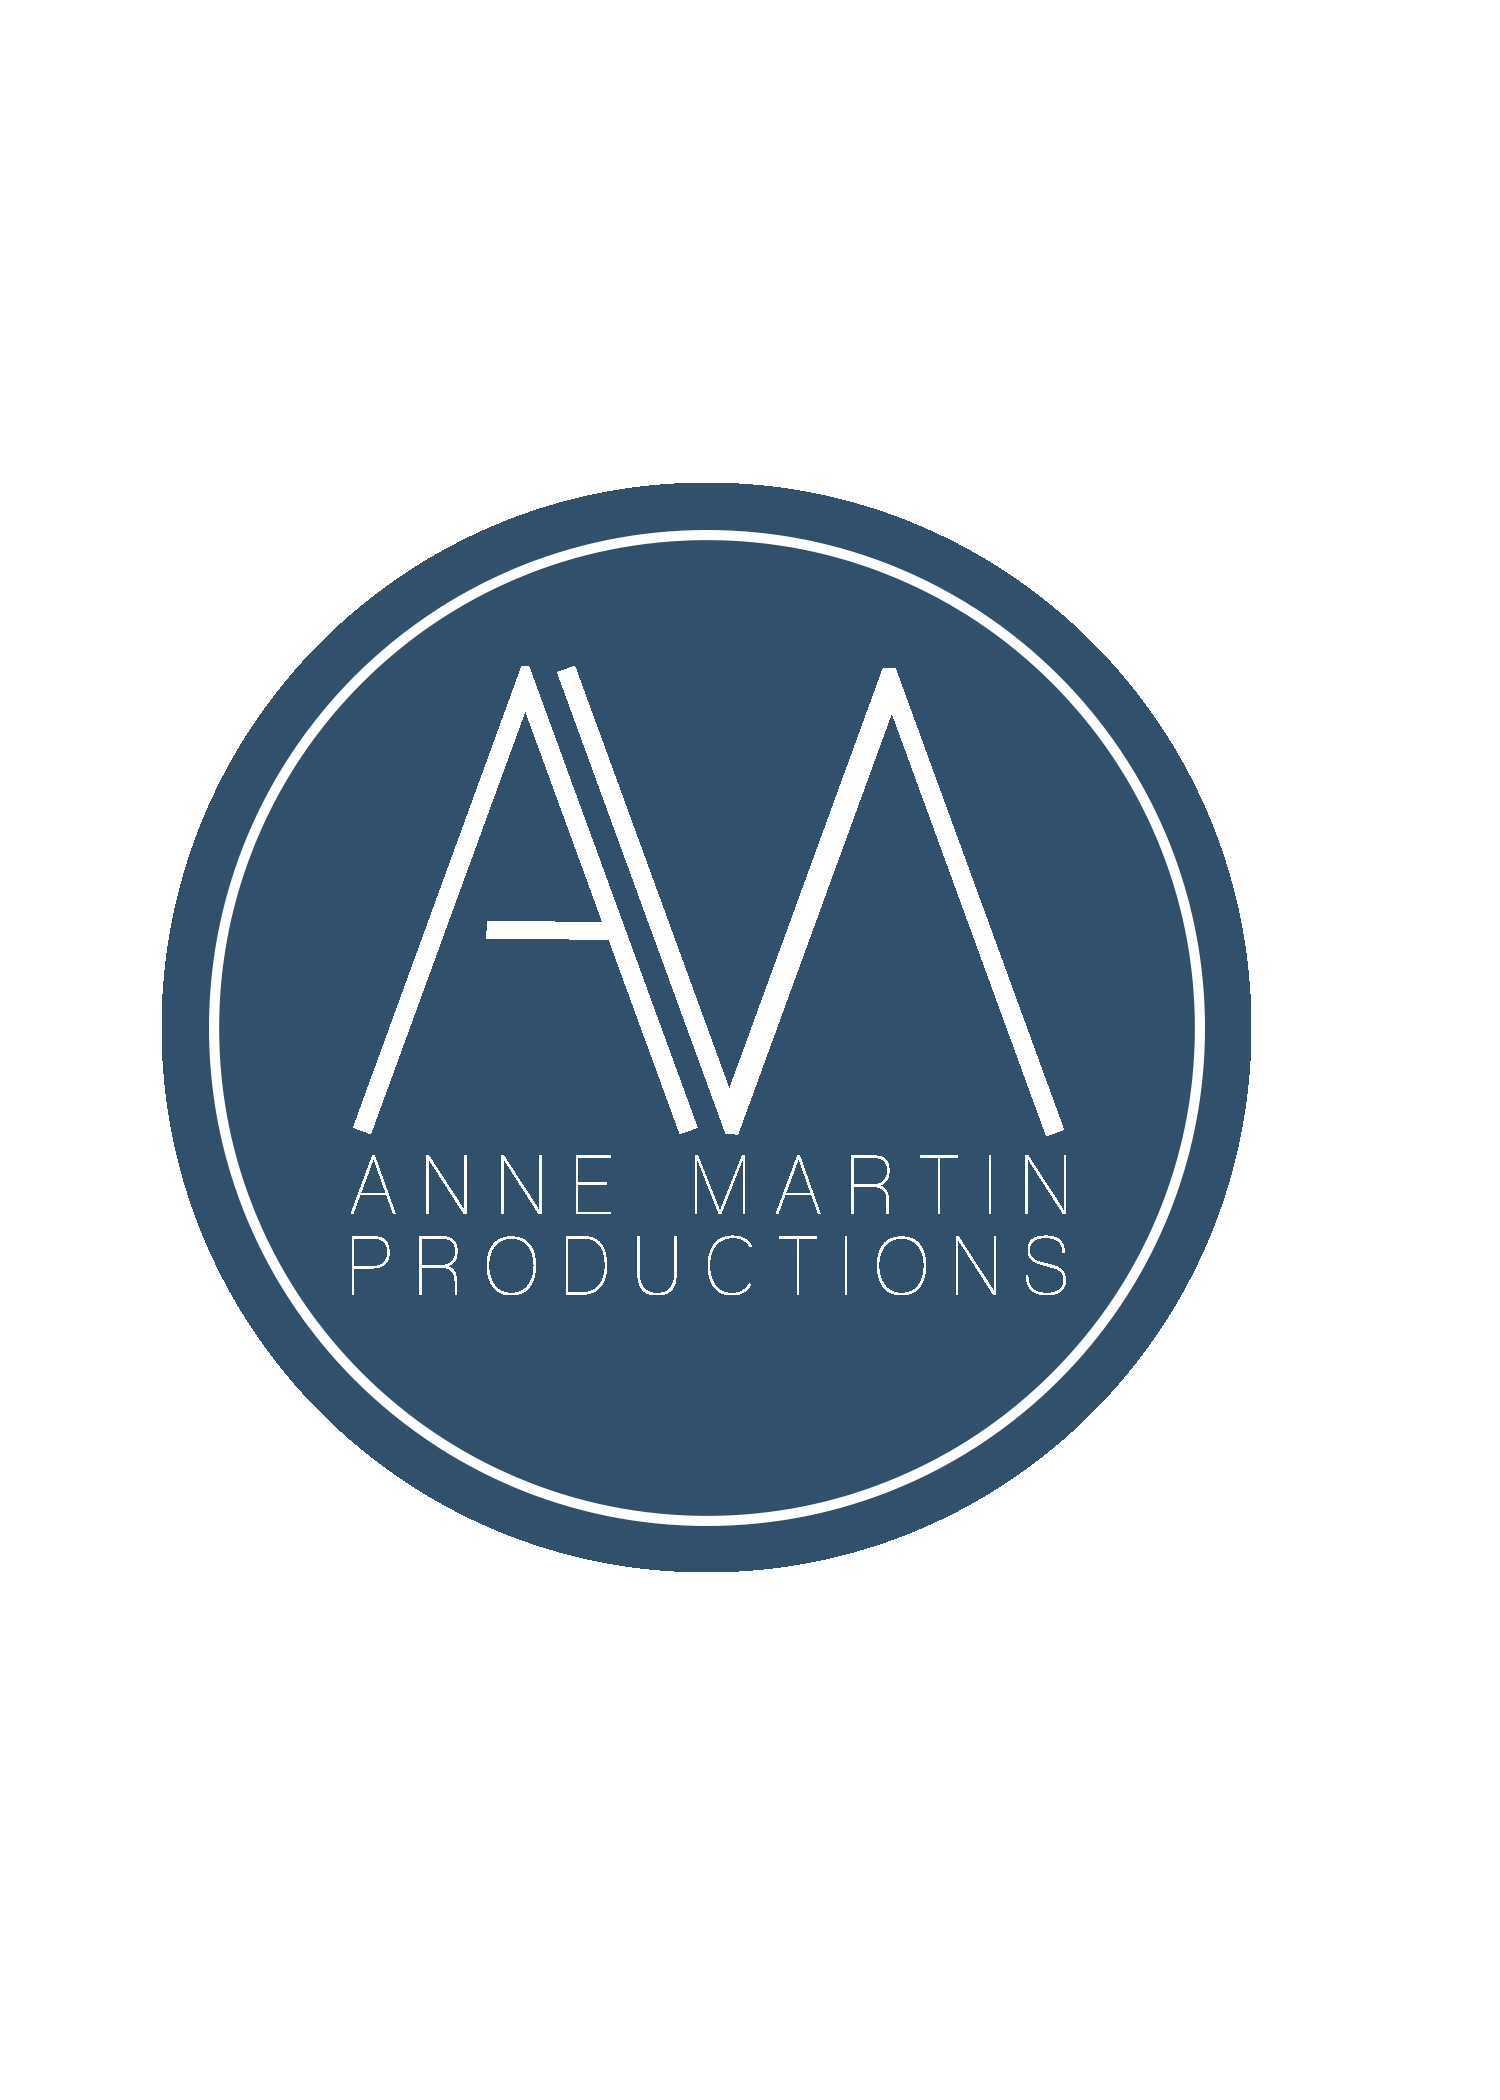 Anne Martin Productions